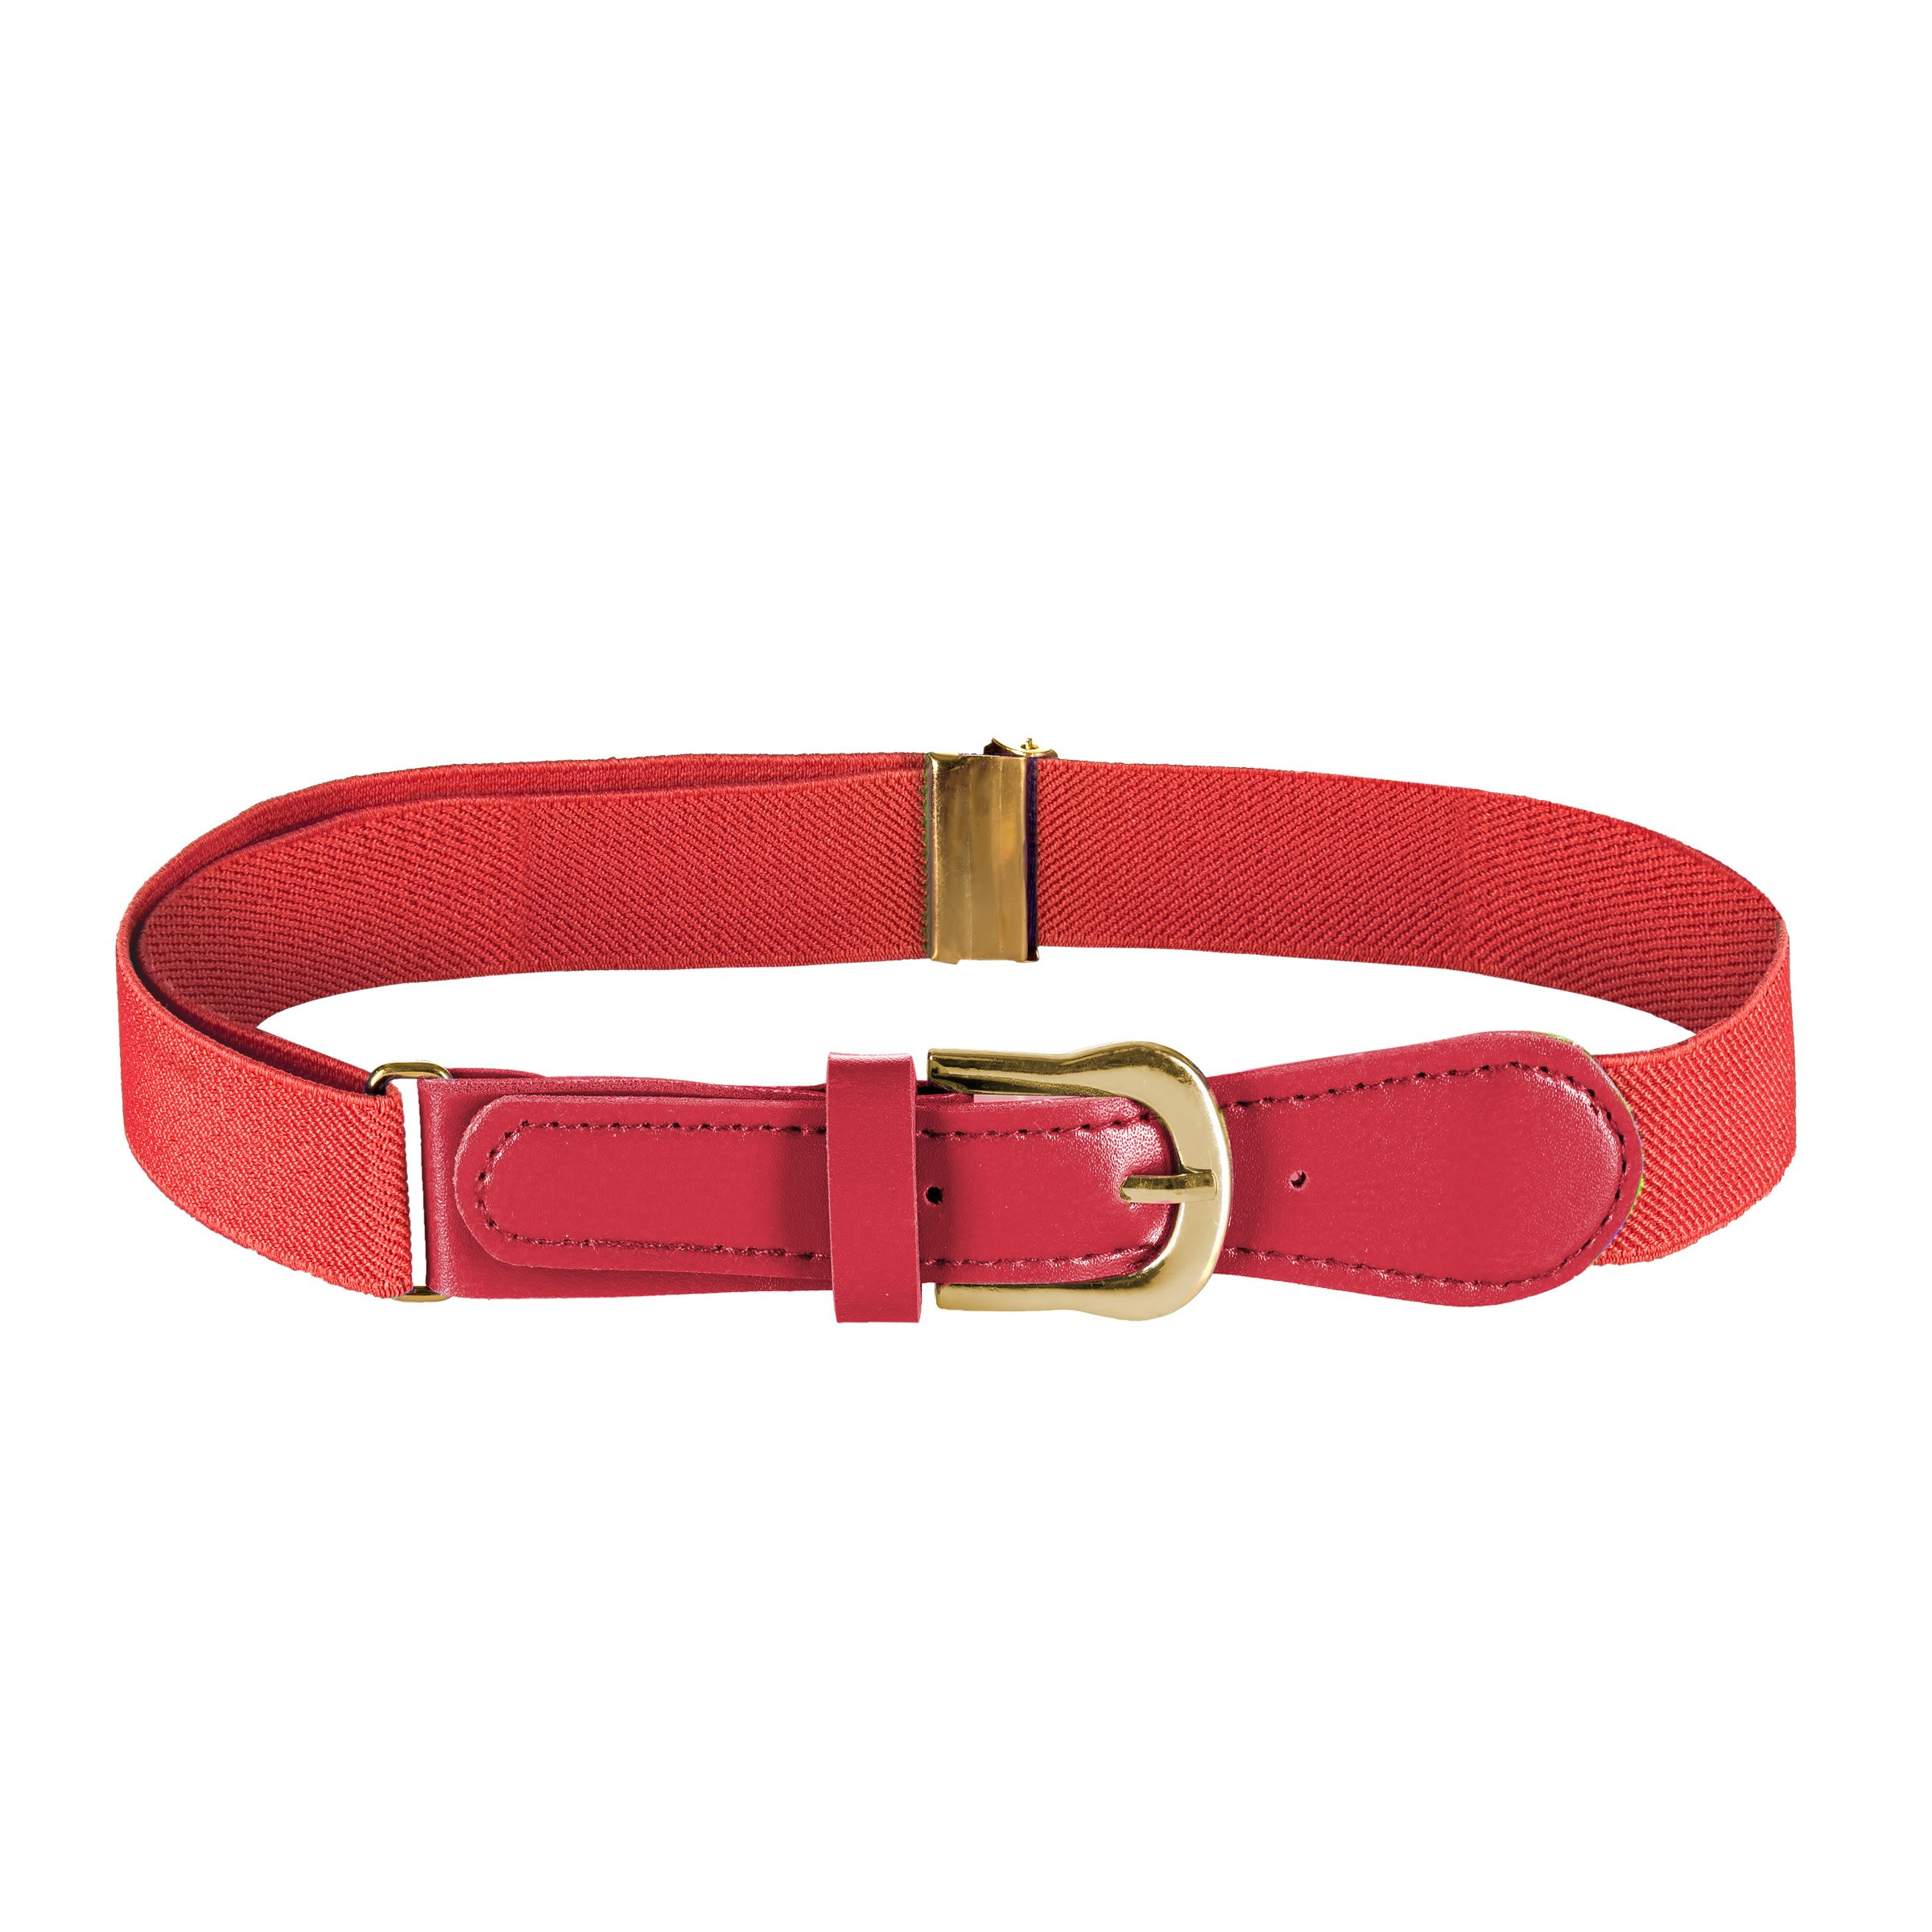 FIT RITE Kids Elastic Adjustable Belt with Leather Closure (Red)